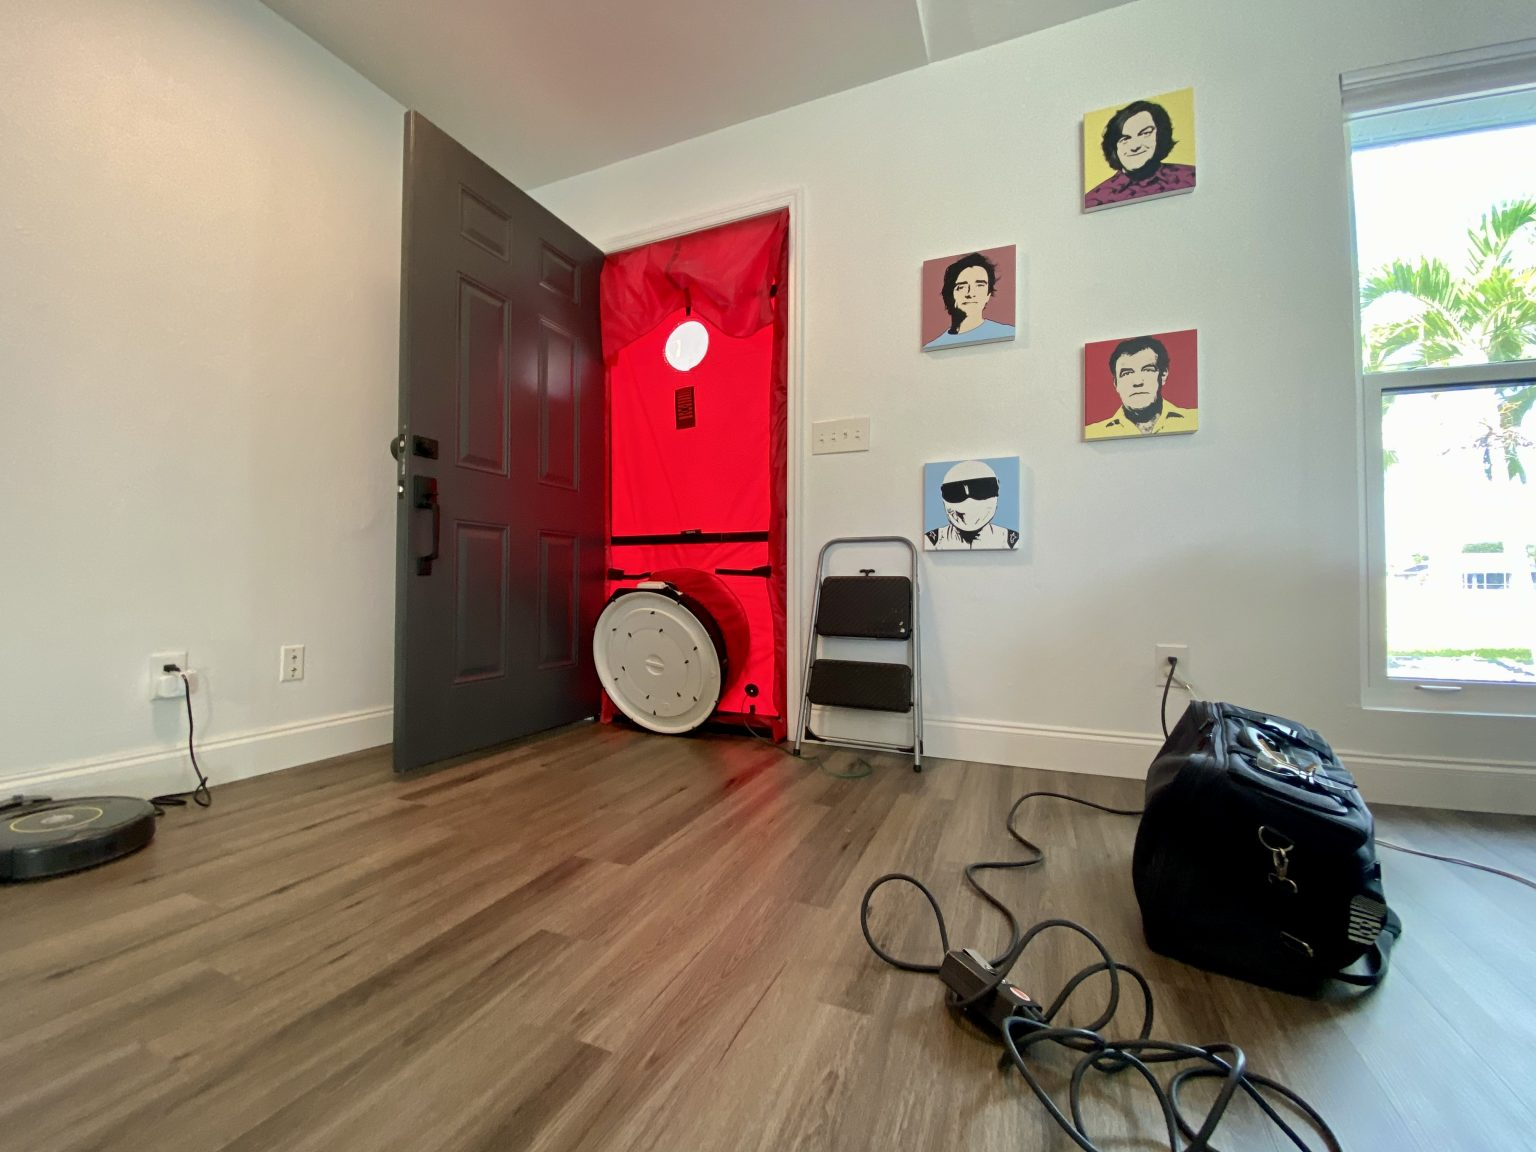 A picture of the doorway with a blower door test attached in our attainable net zero energy solar home. The door is opened with the testing machine creating an airtight seal and a fan inside it.